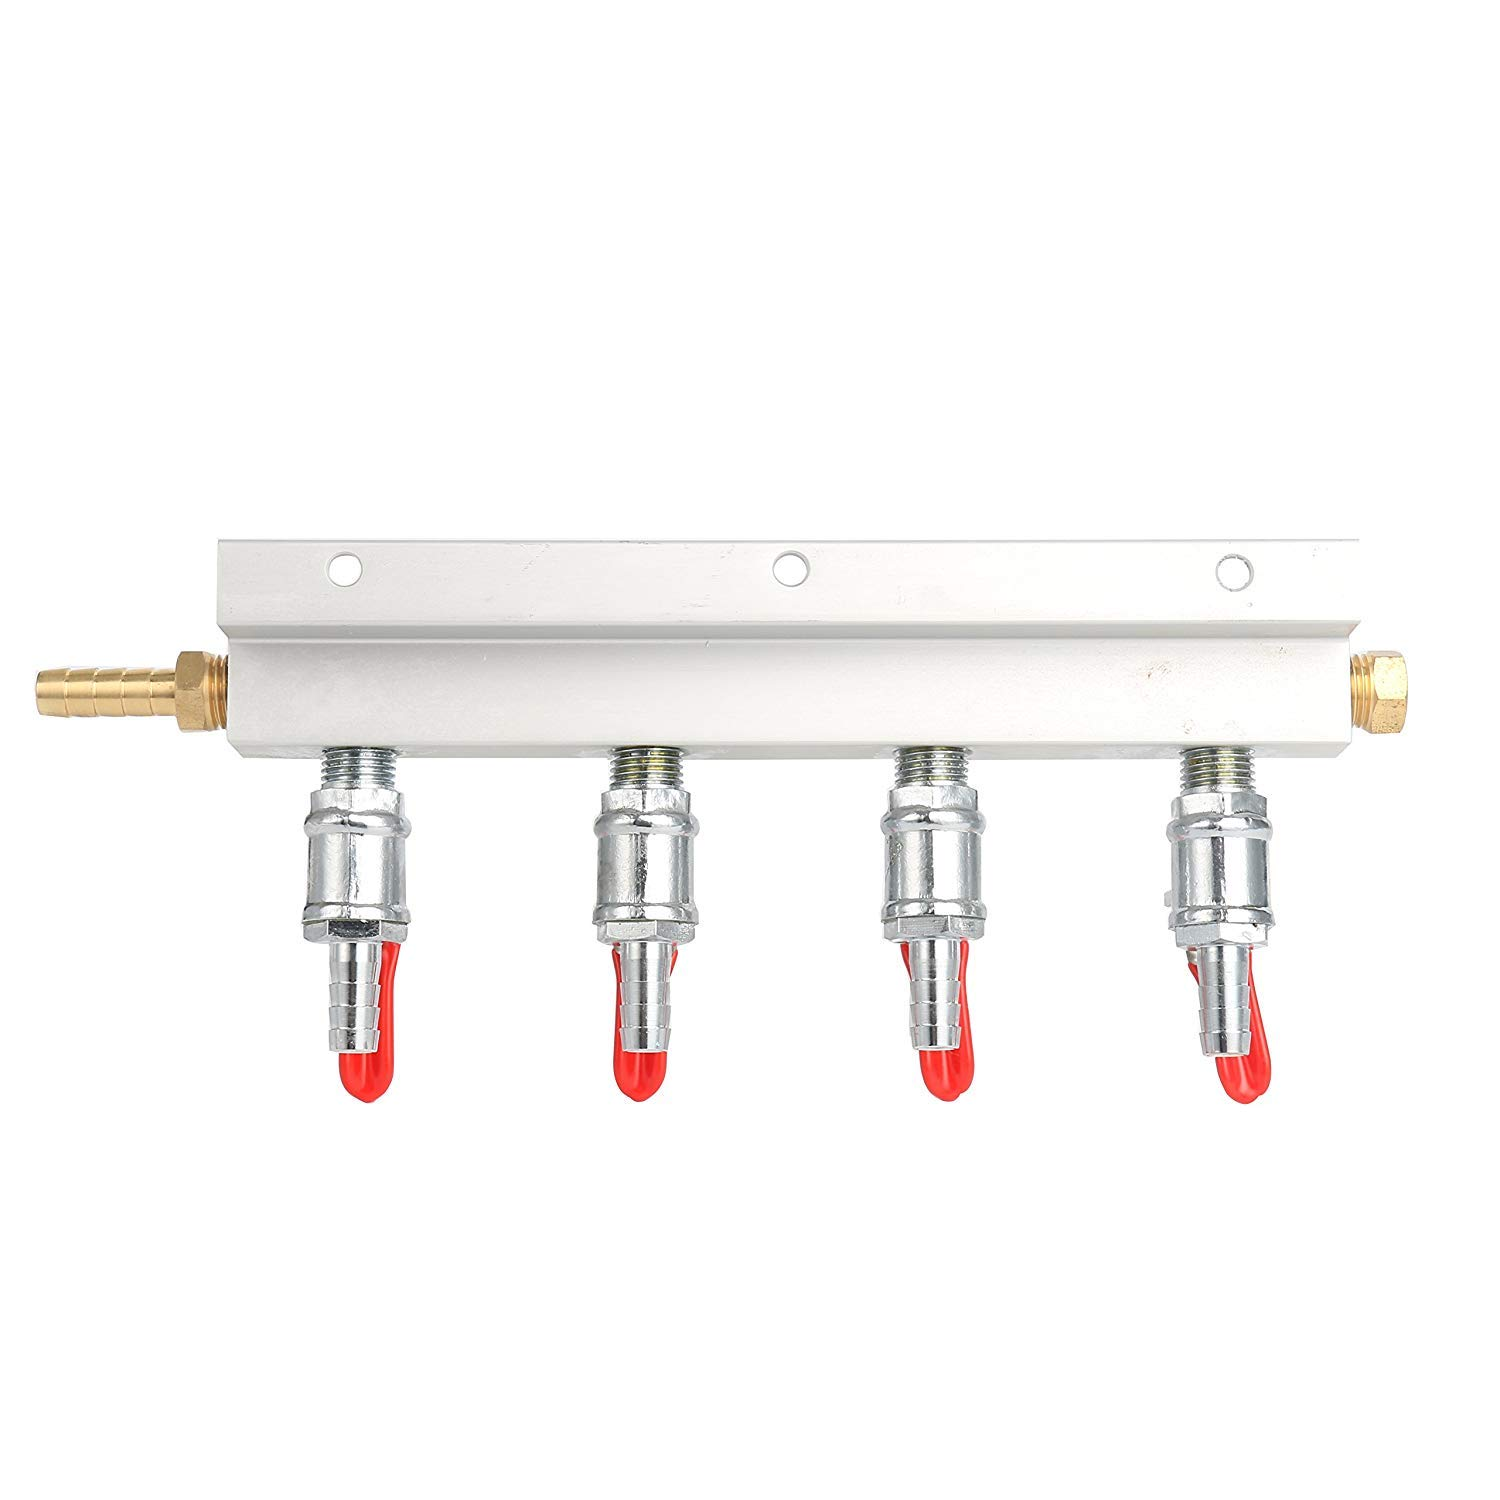 YaeBrew Gas Manifold, Beer Gas Distributor, Air Distributor CO2 Manifold - Splitter 5/16'' Barb Fittings (4 Way)